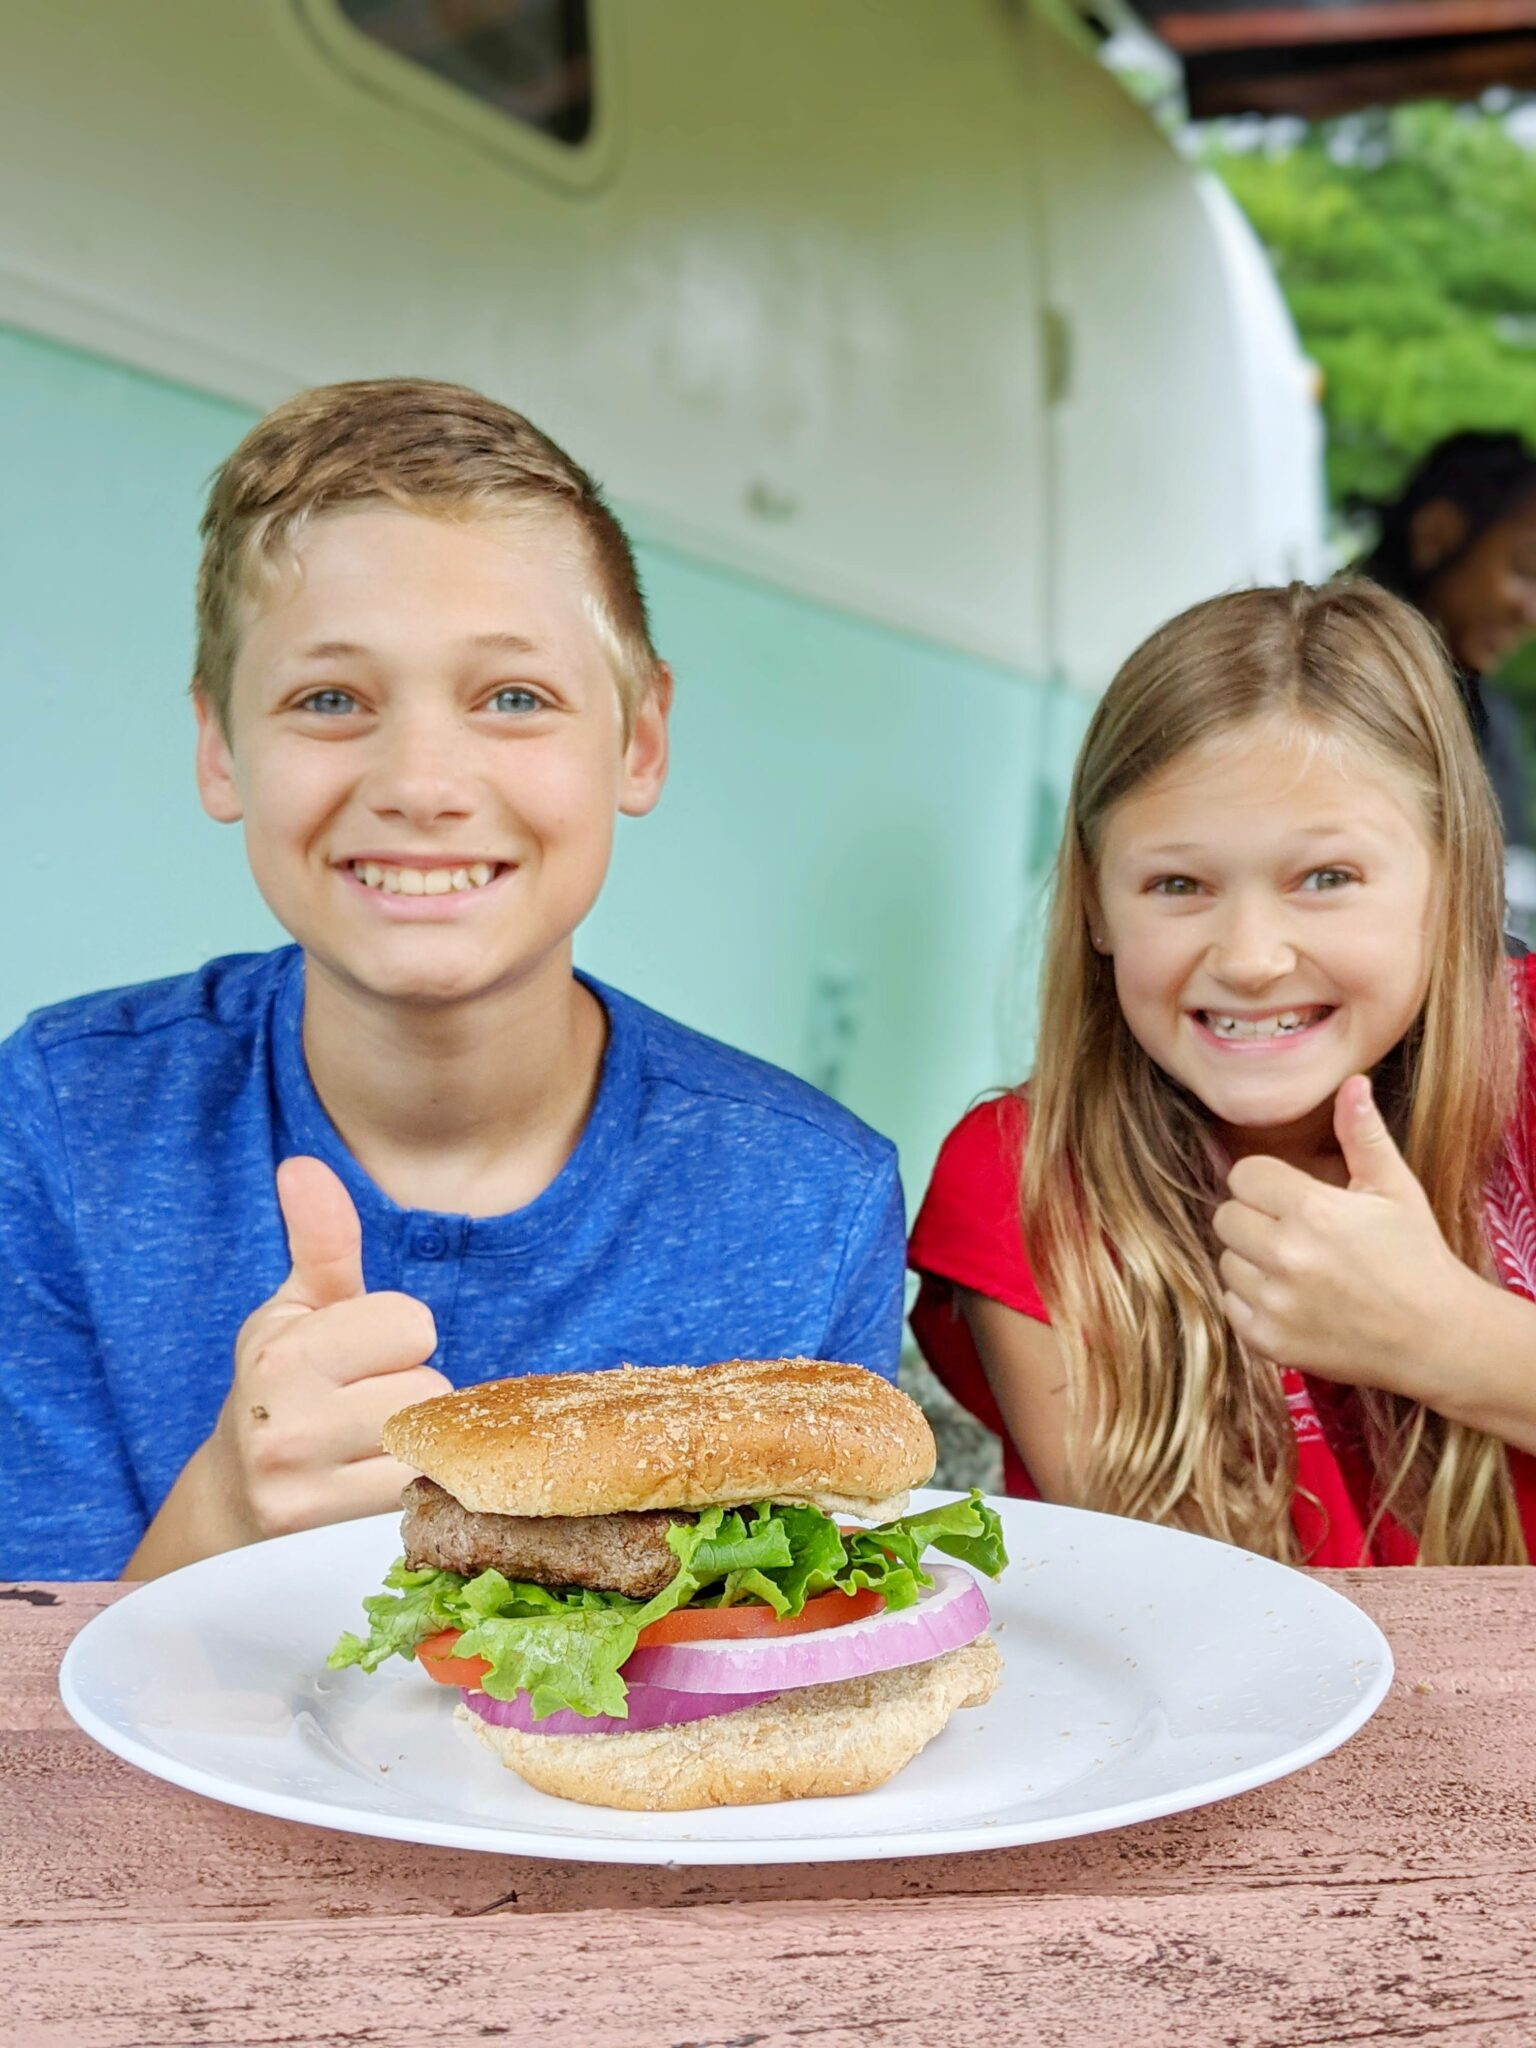 My Favorite Camping Meal Hacks with BUBBA Burger All Things with Purpose Sarah Lemp 7